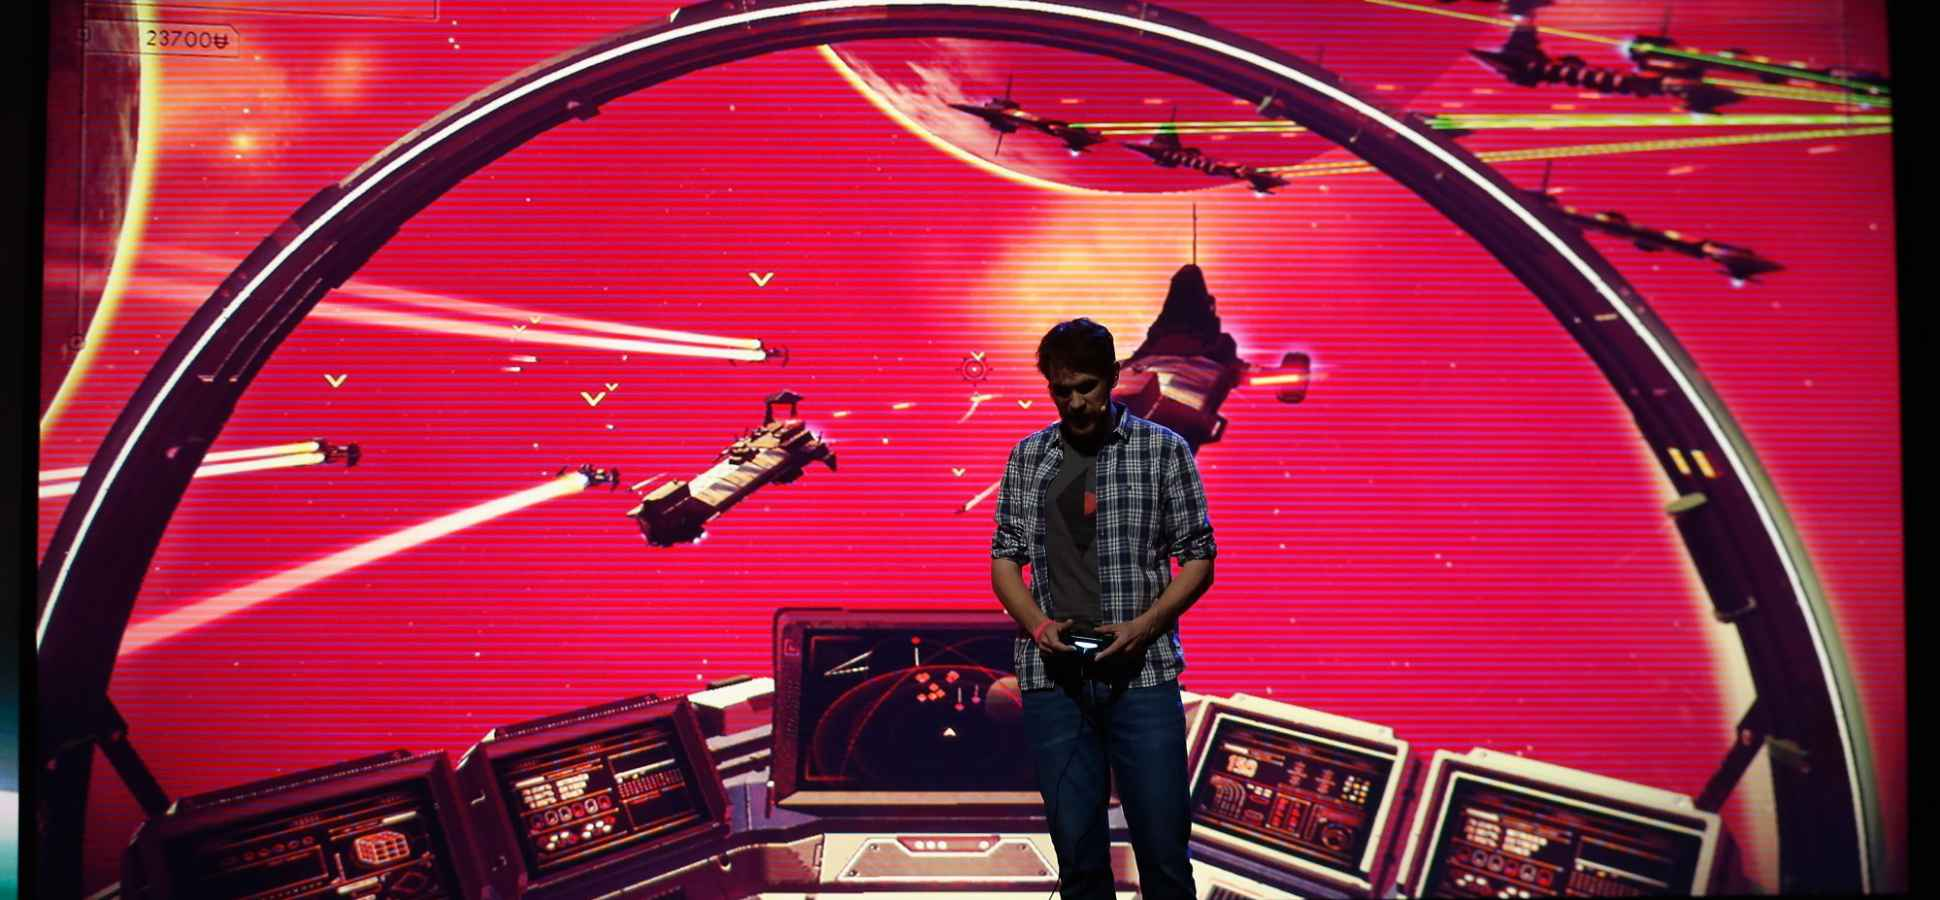 No Man's Sky is the Most Unusual Game of the Year, and It's From This Tiny U.K. Company